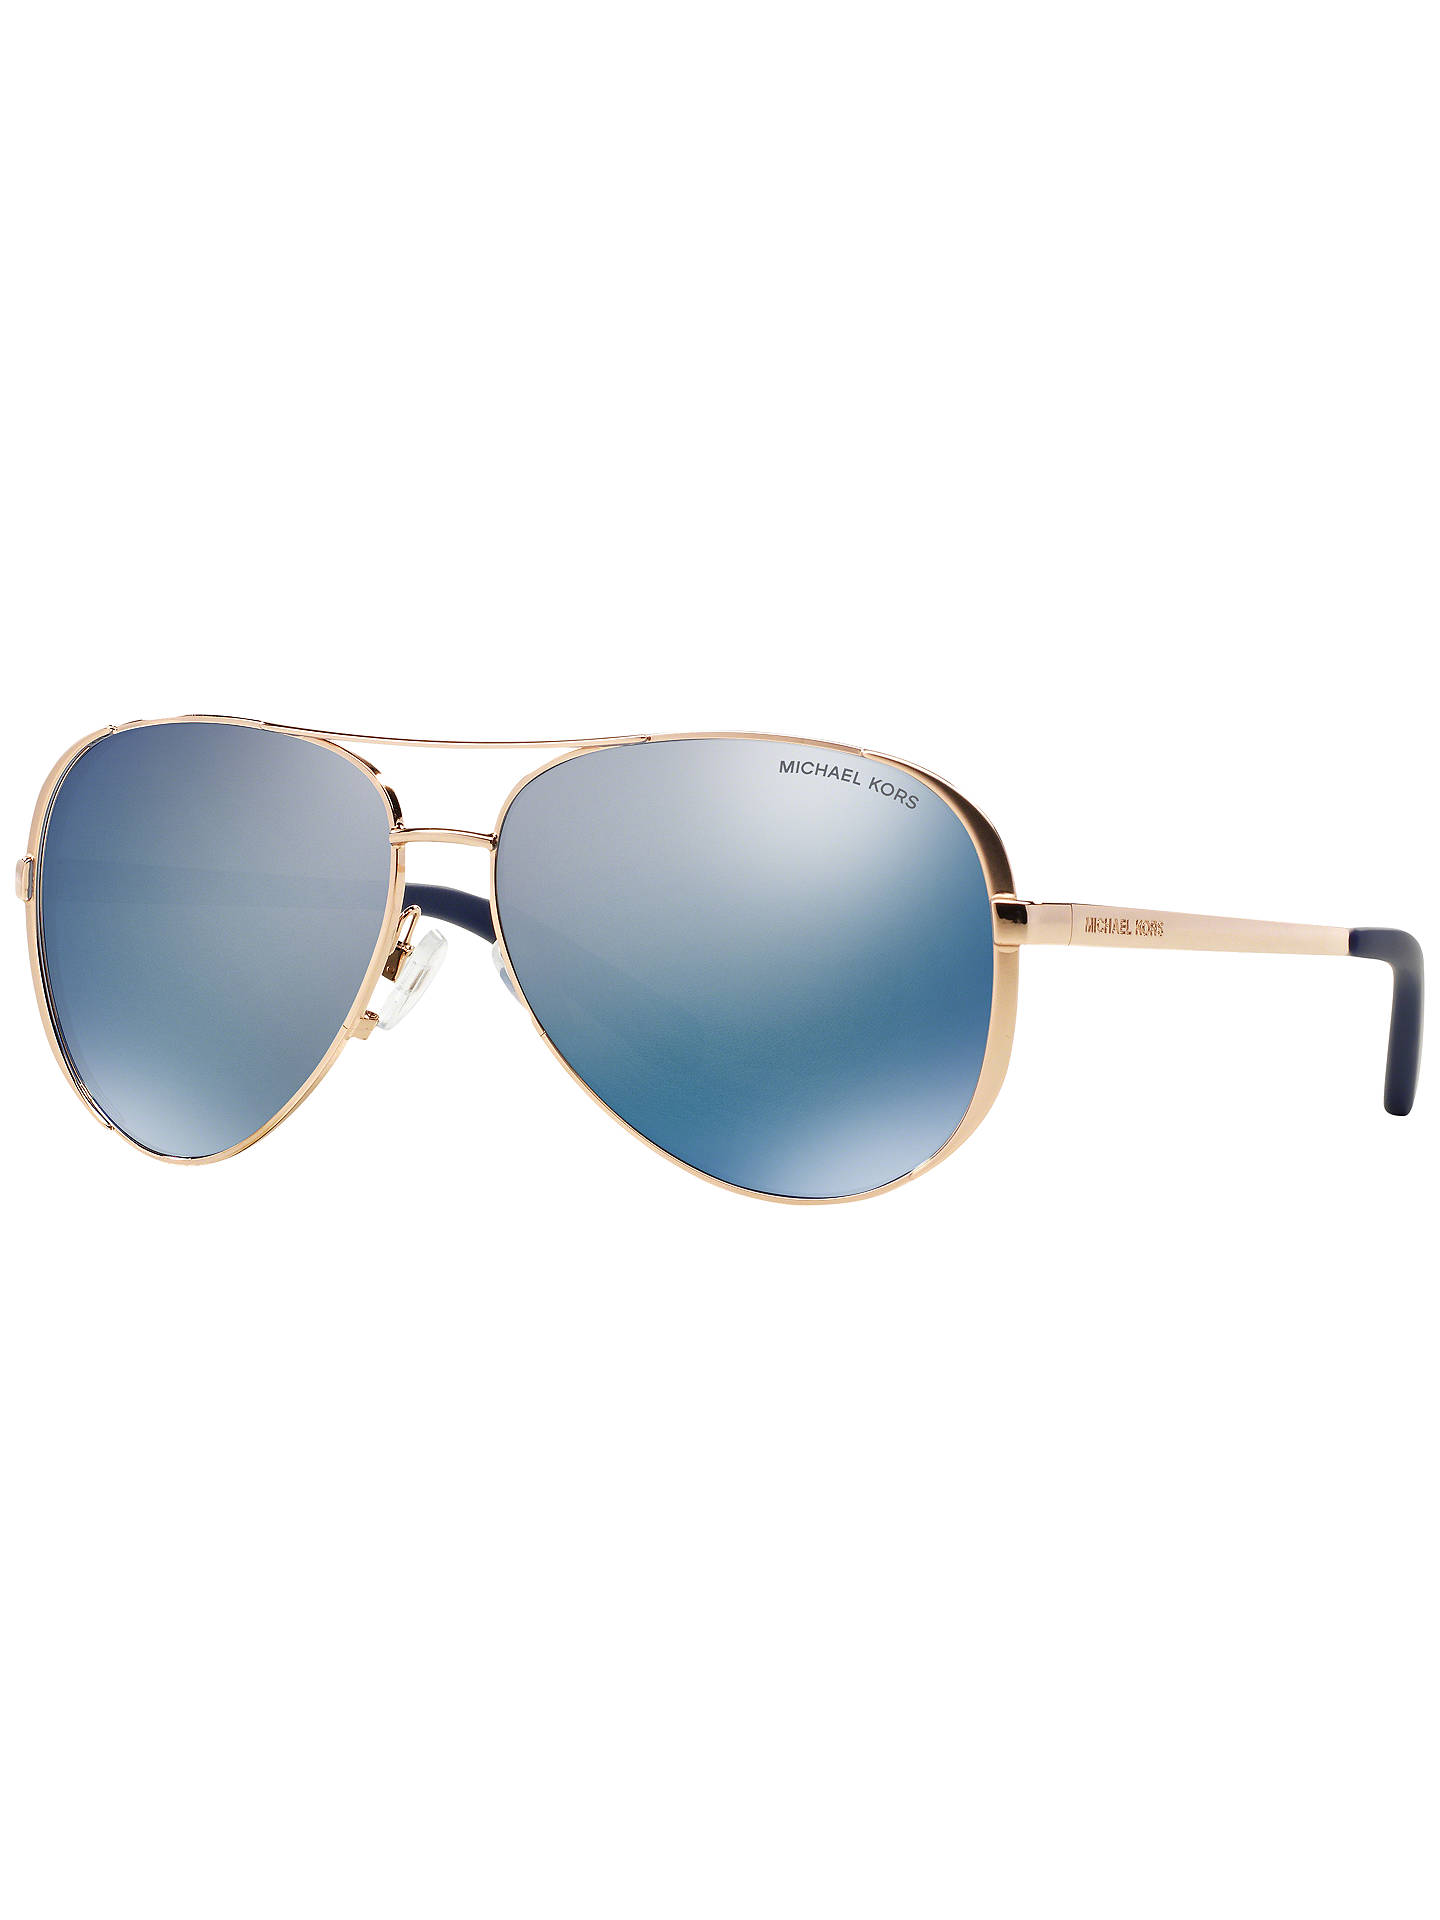 16efa18a4213 Michael Kors MK5004 Chelsea Polarised Aviator Sunglasses at John ...